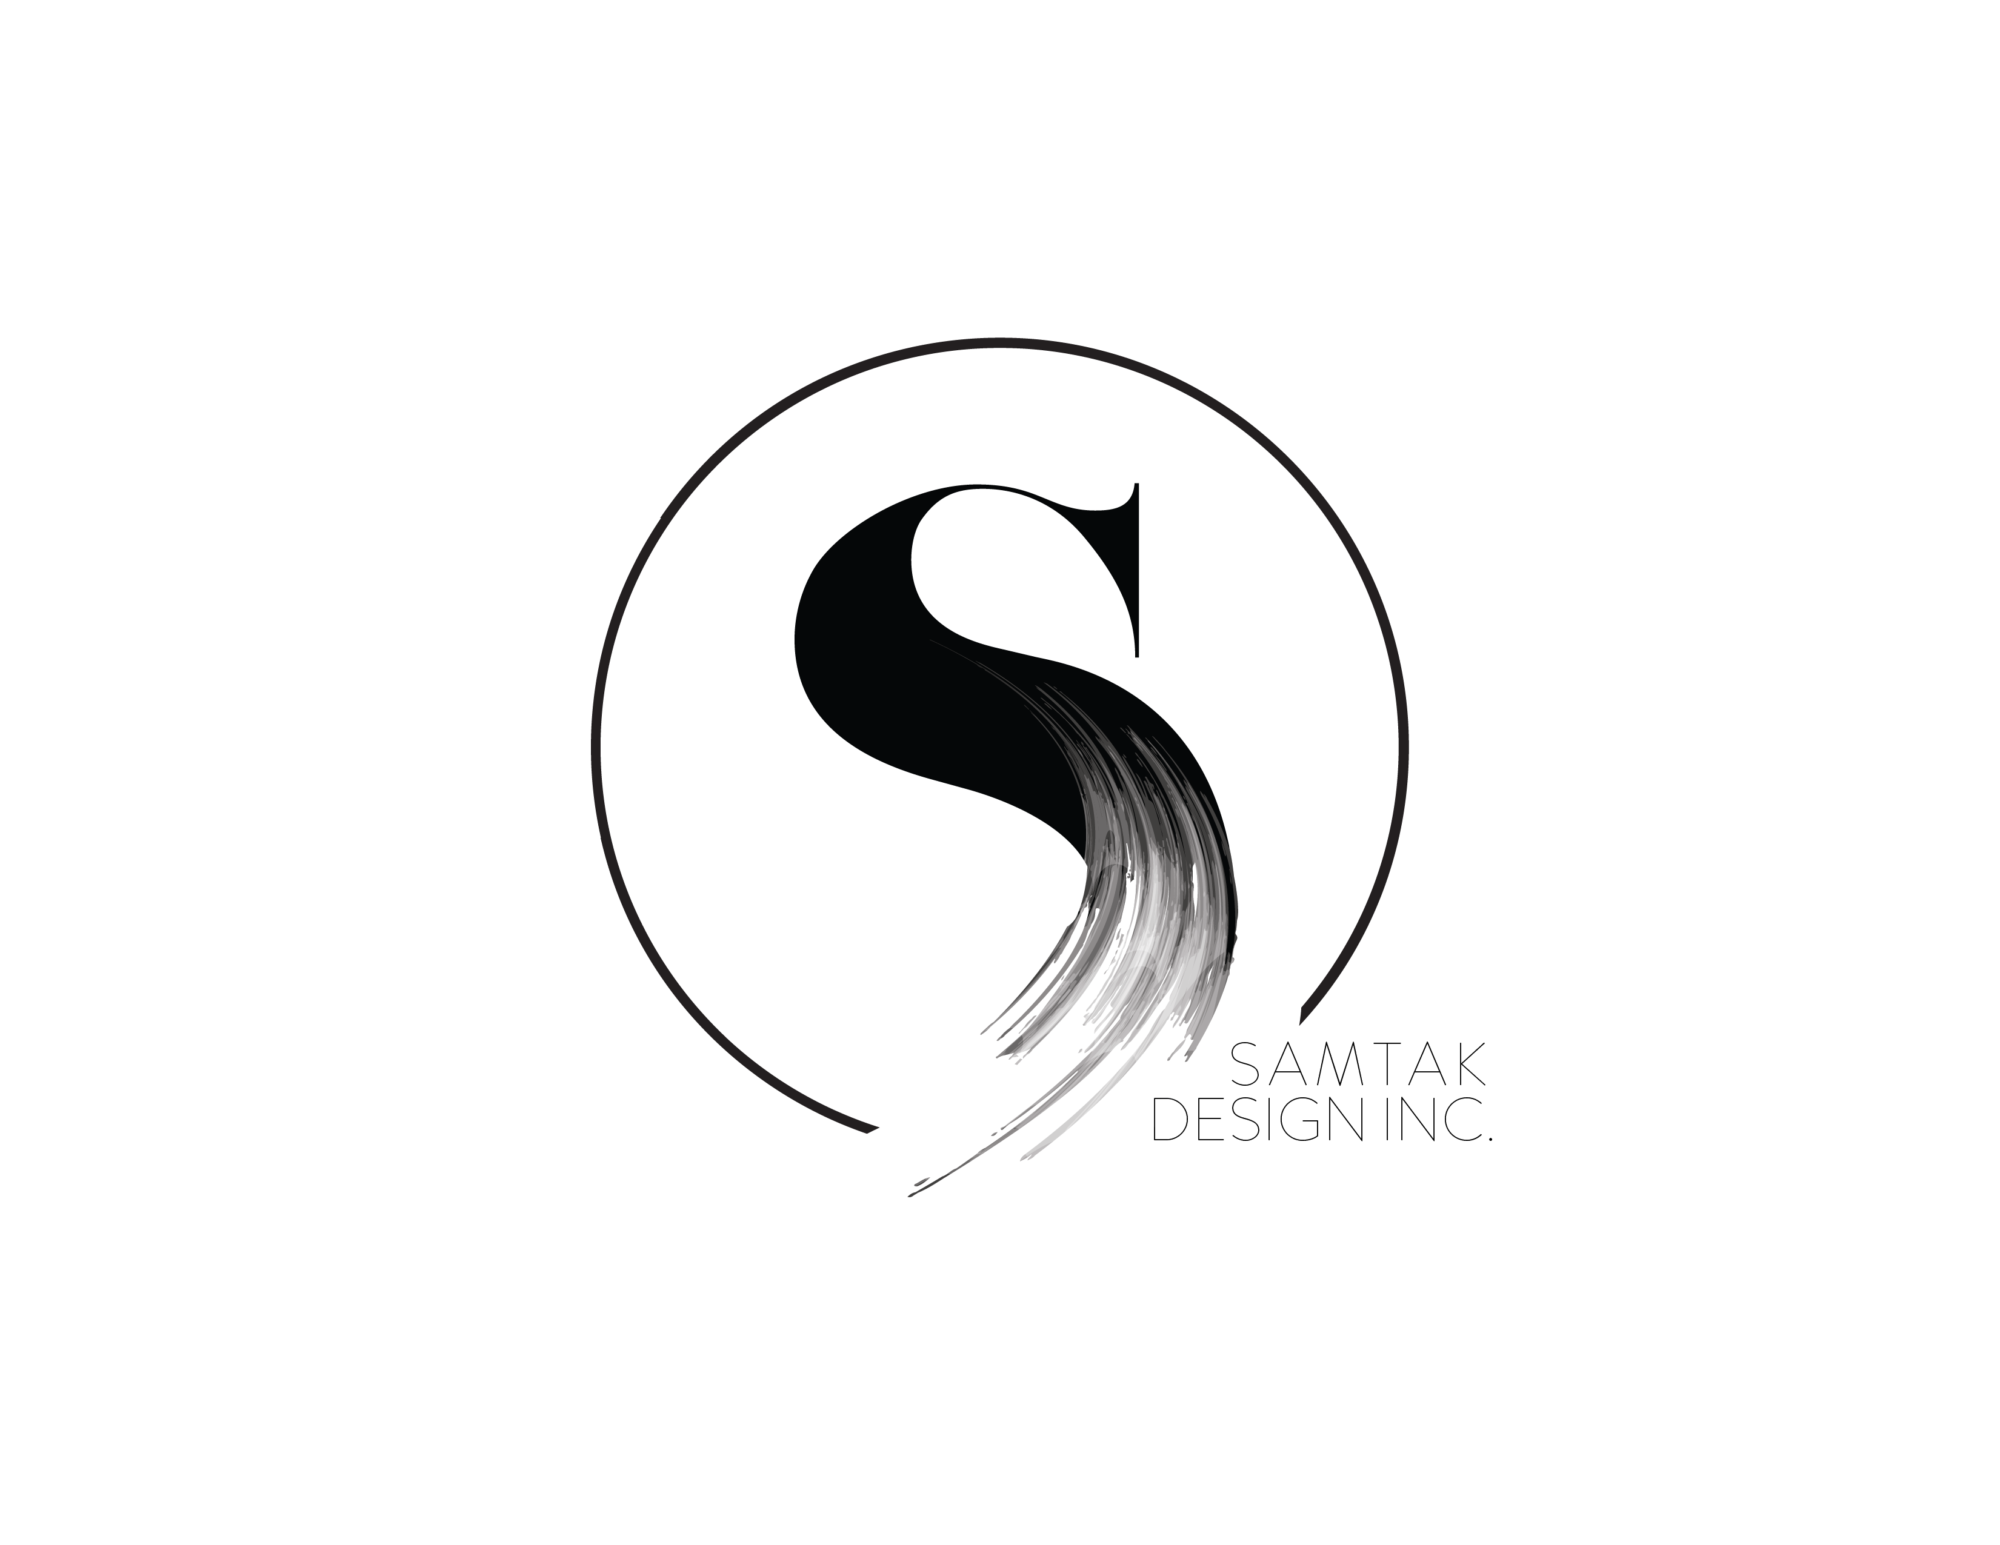 SAMTAK Design, Inc.